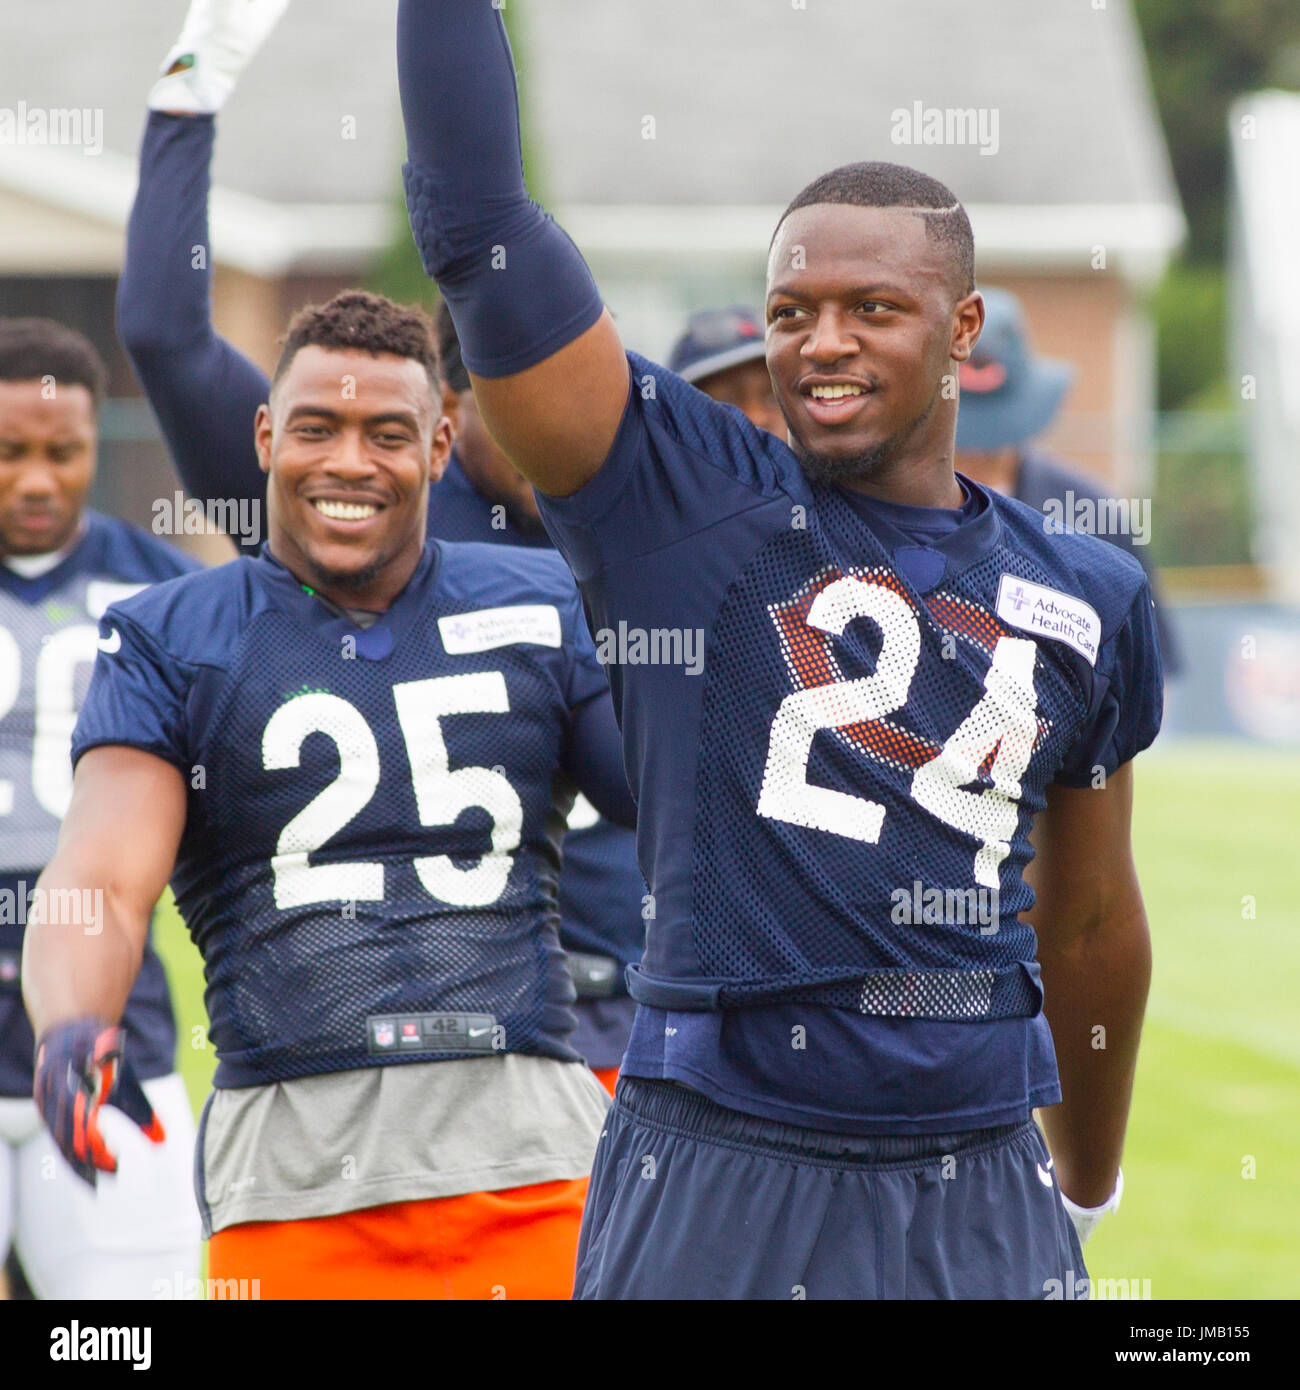 46332e17f Chicago Bears  24 Jordan Howard and  25 Marcus Cooper warm up during  training camp on the campus of Olivet Nazarene University